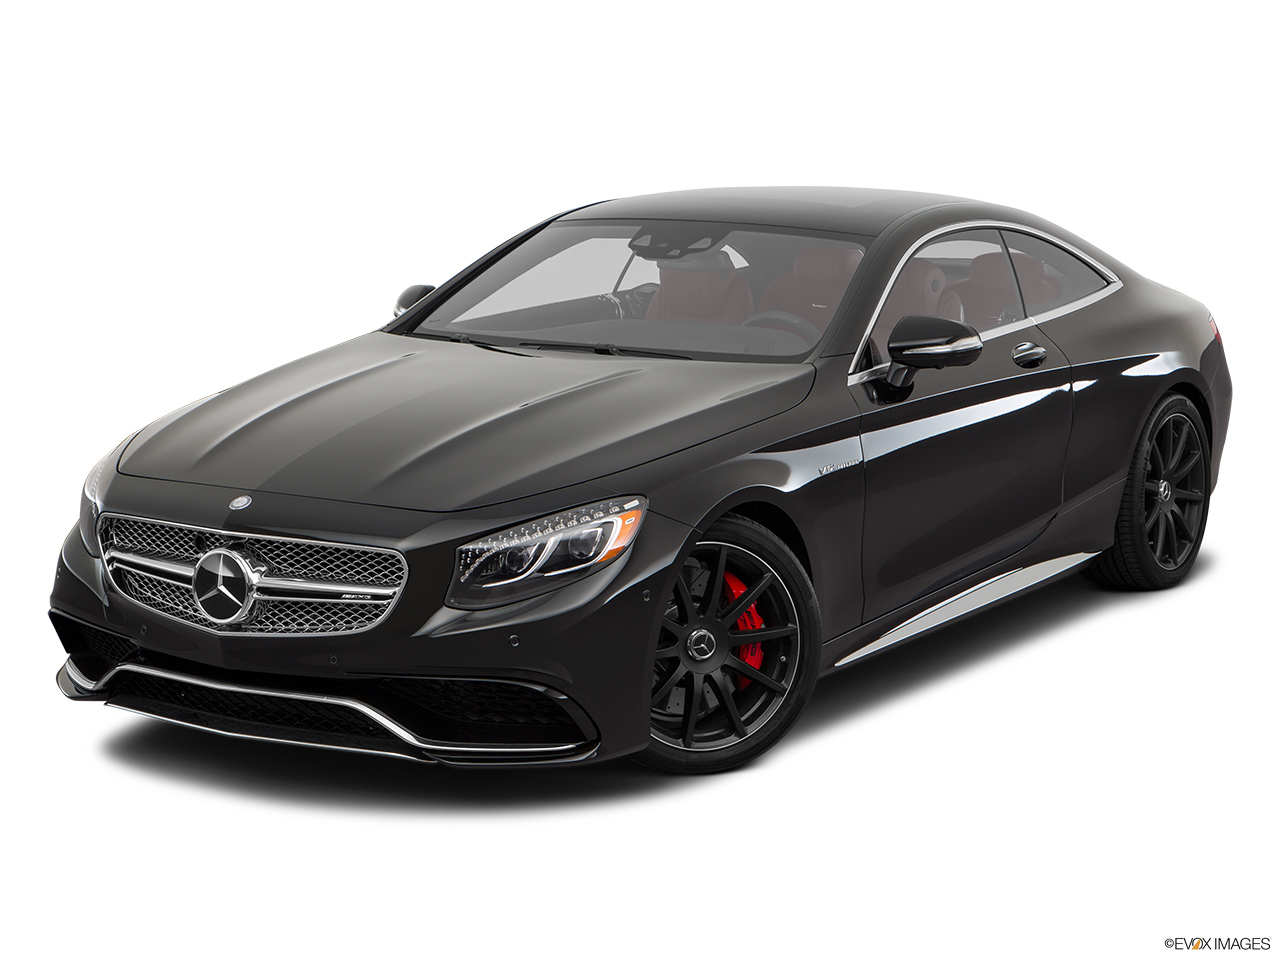 Mercedes benz s 65 amg coupe price in saudi arabia new for Price of a new mercedes benz